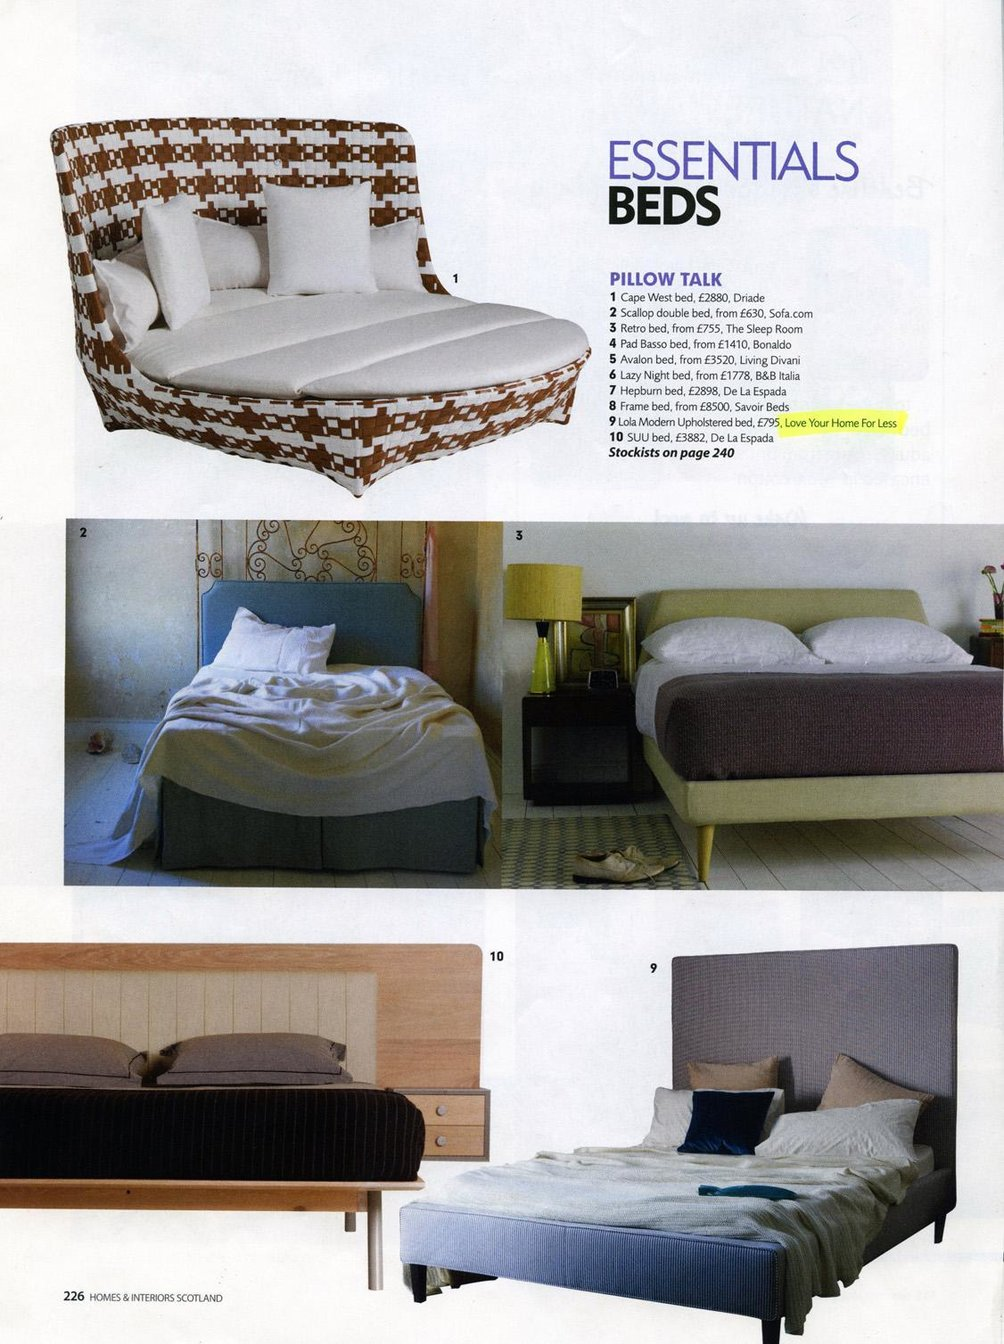 Our Lola Bed is one of Homes & Interiors essentials